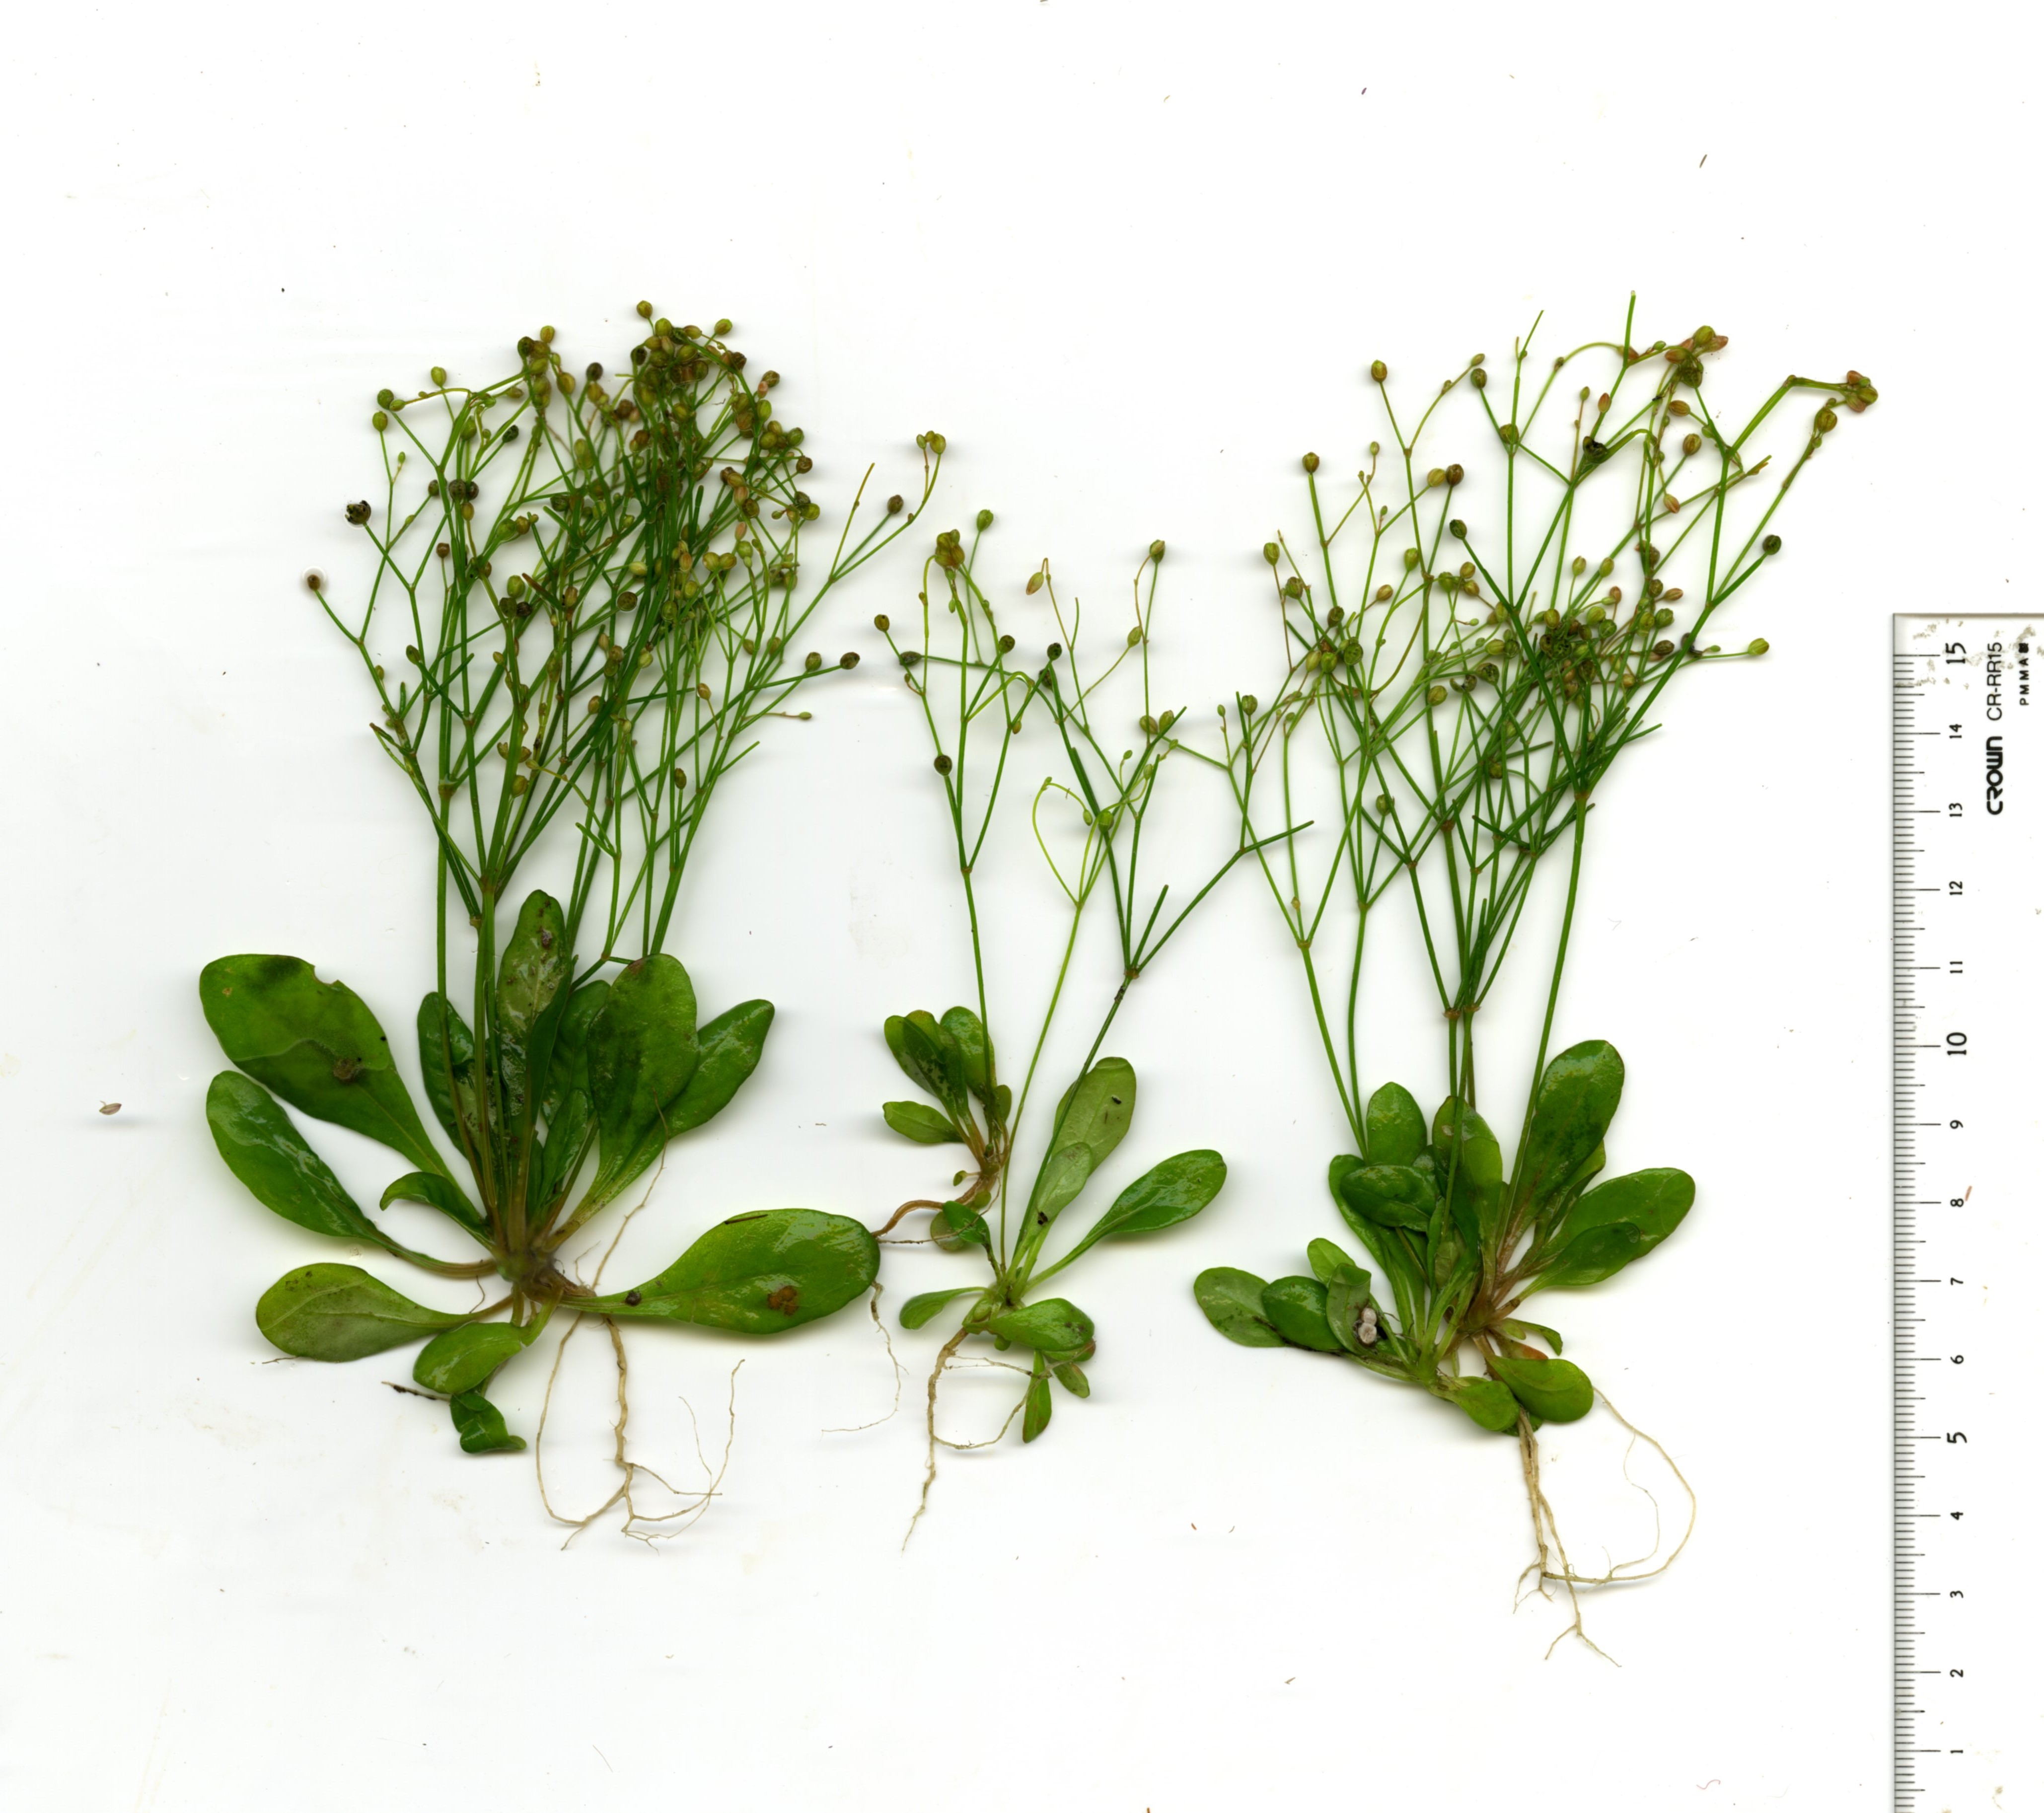 Whole plant with inflorescence